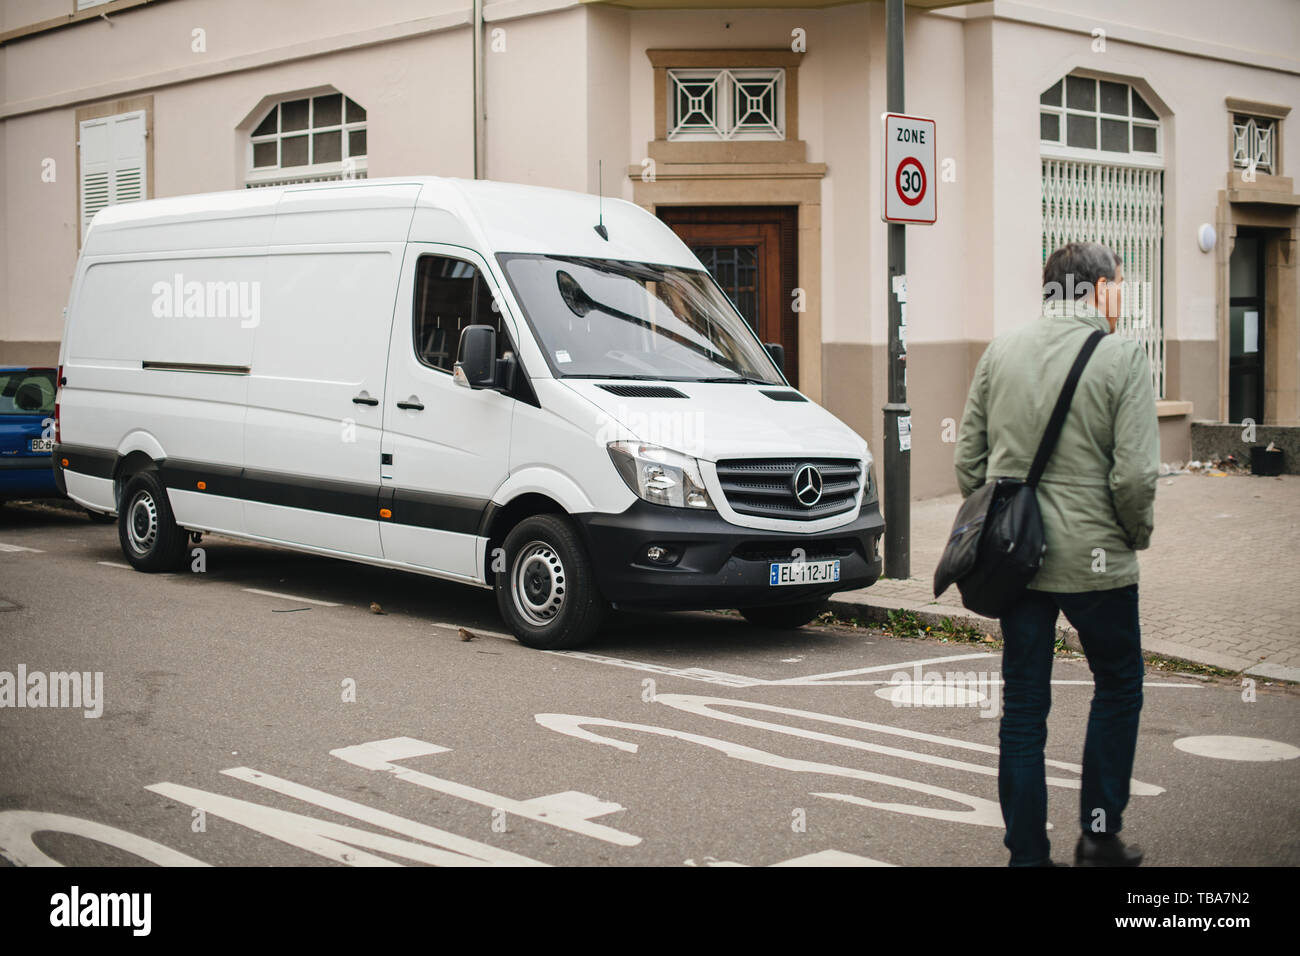 Strasbourg, France - Apr 5, 2017: Adult man crossing street in front of white Mercedes-Benz Sprinter van parked on French street  - delivery van - Stock Image